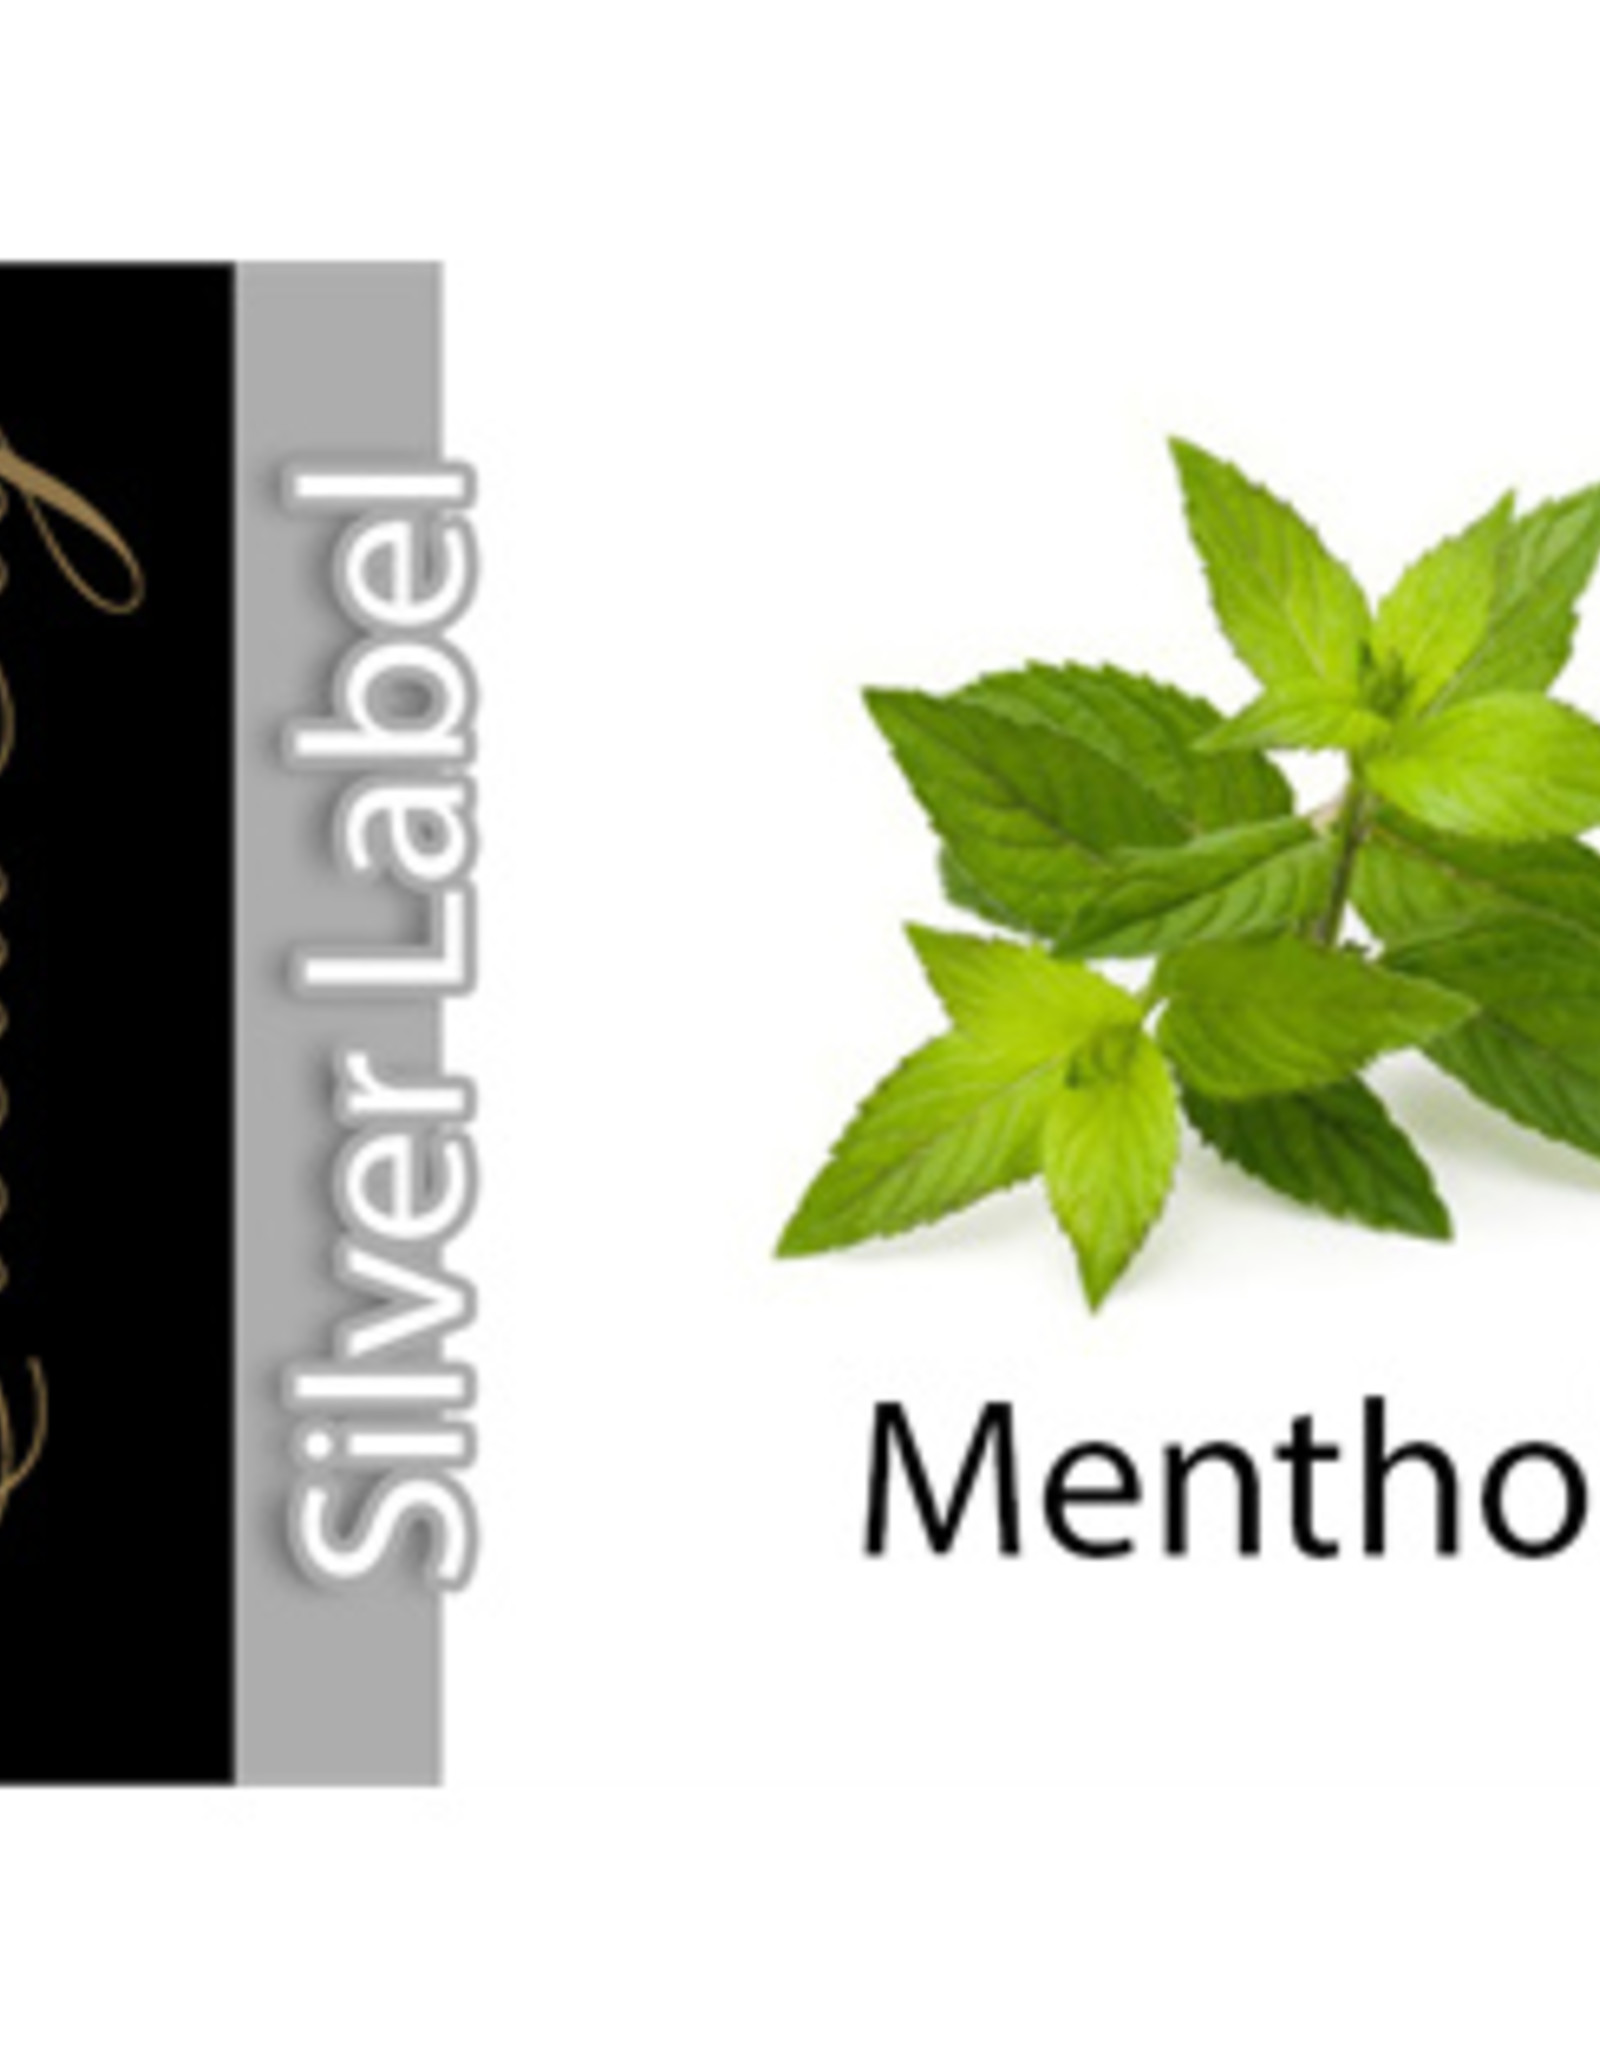 Exclucig Exclucig Silver Label E-liquid Menthol 3 mg Nicotine